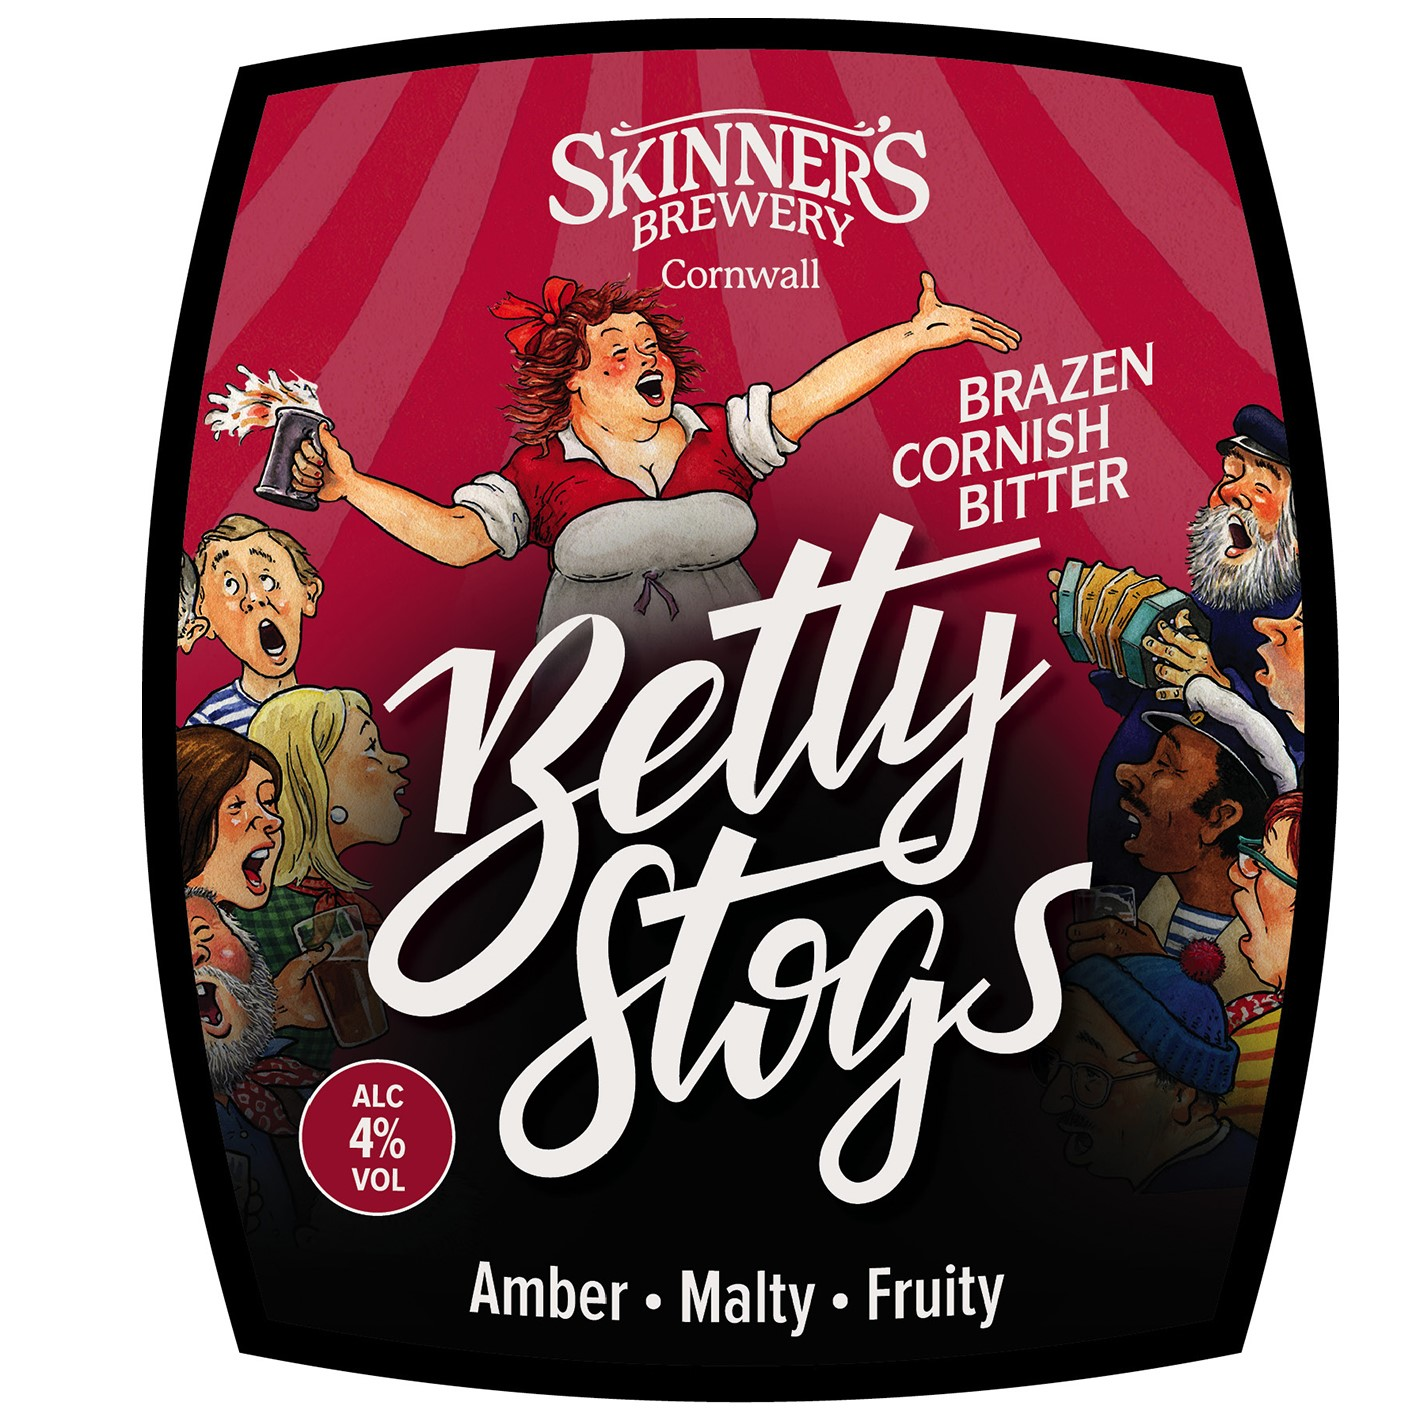 Skinner's Brewing Co Limited Betty Stogs